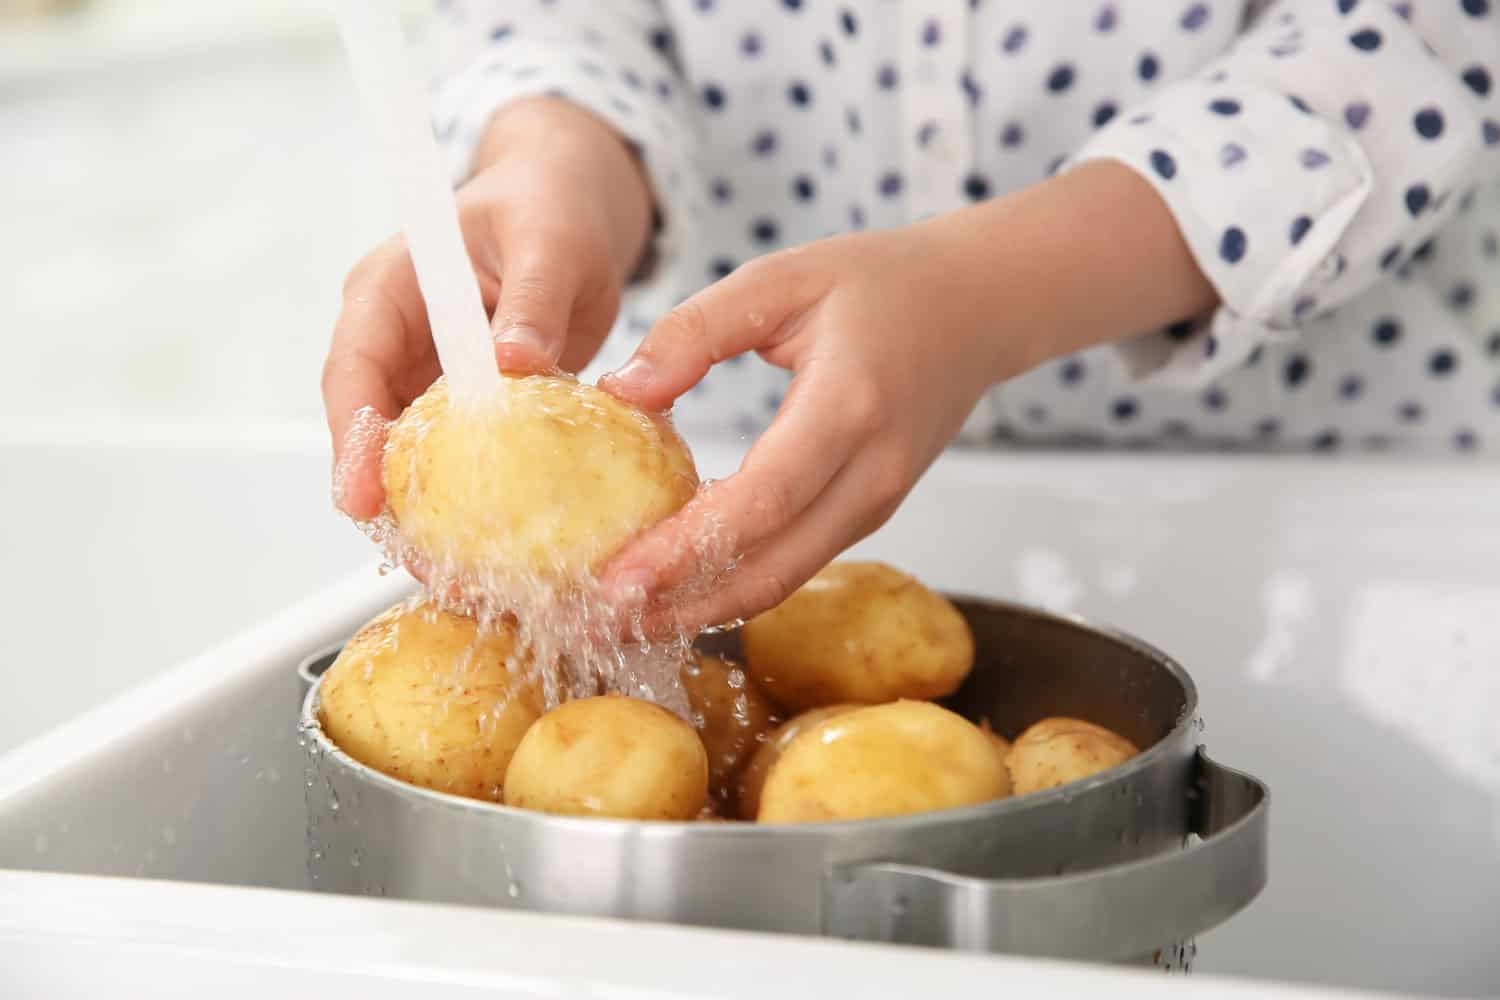 A woman washing freshly peeled potatoes on her kitchen sink